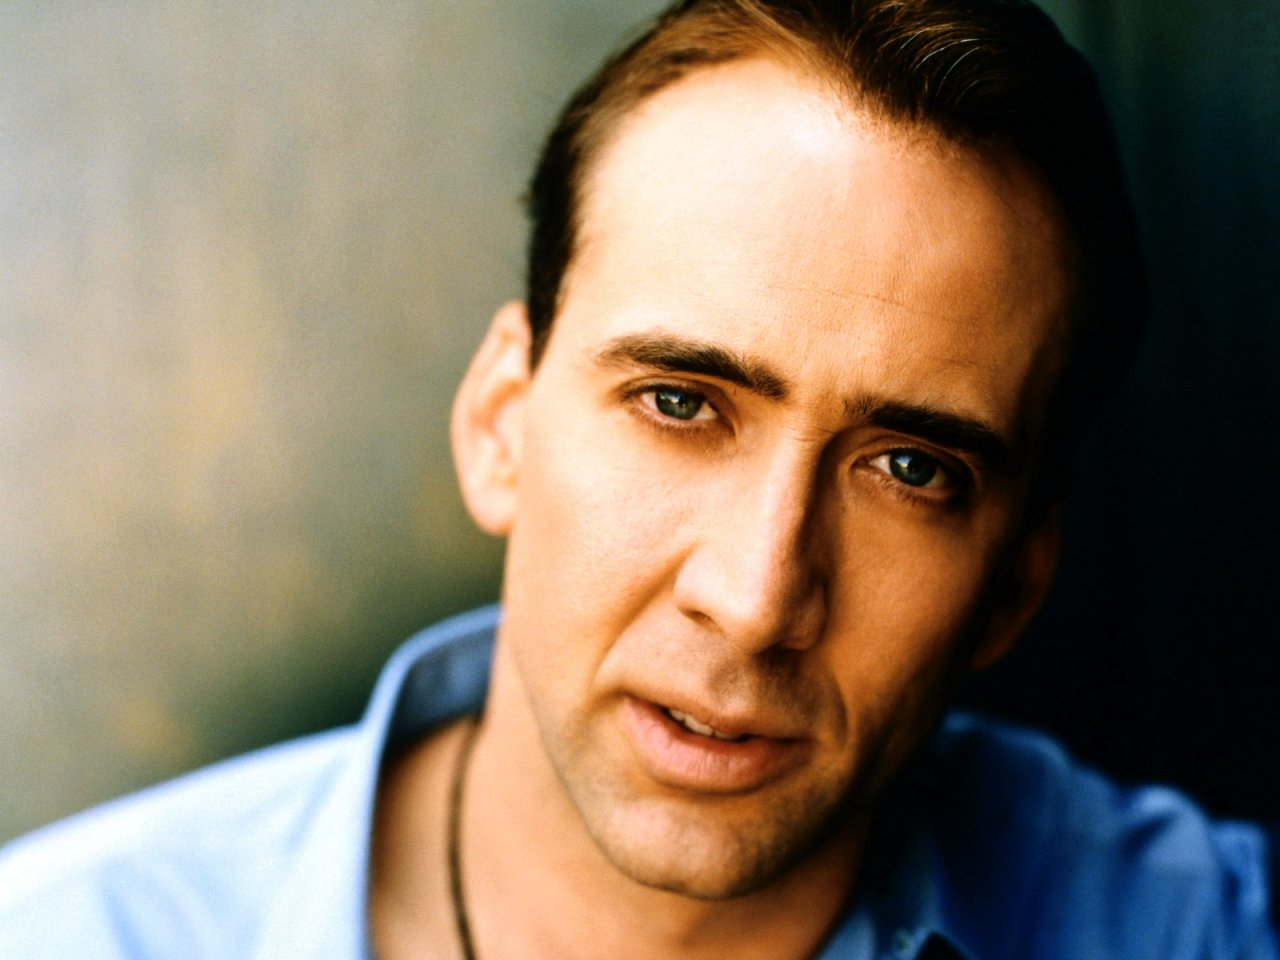 Nicolas Cage Hd Wallpapers Download HD WALLPAPERS FREE DOWNLOAD 1280x960